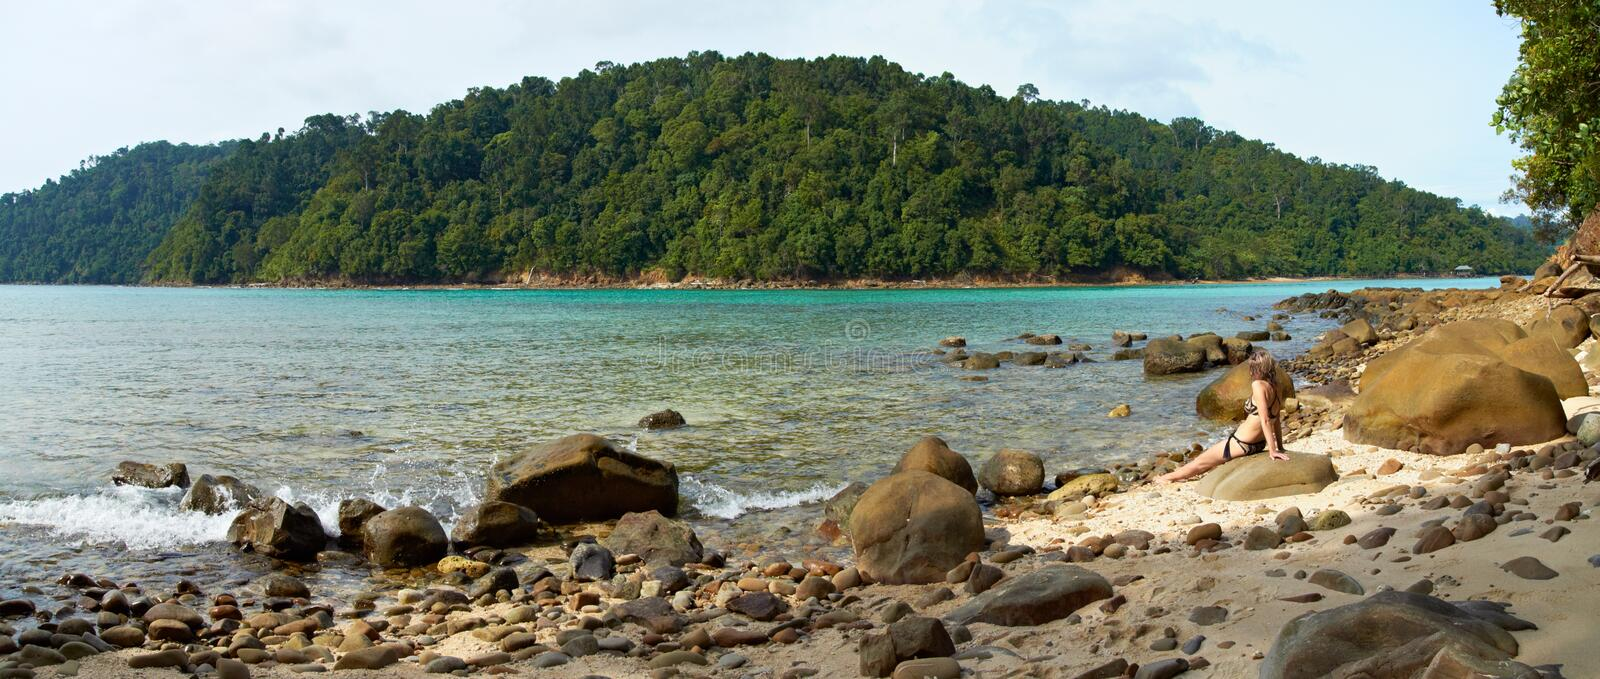 Download On a Wild Beach stock image. Image of sunny, quiet, island - 26323127